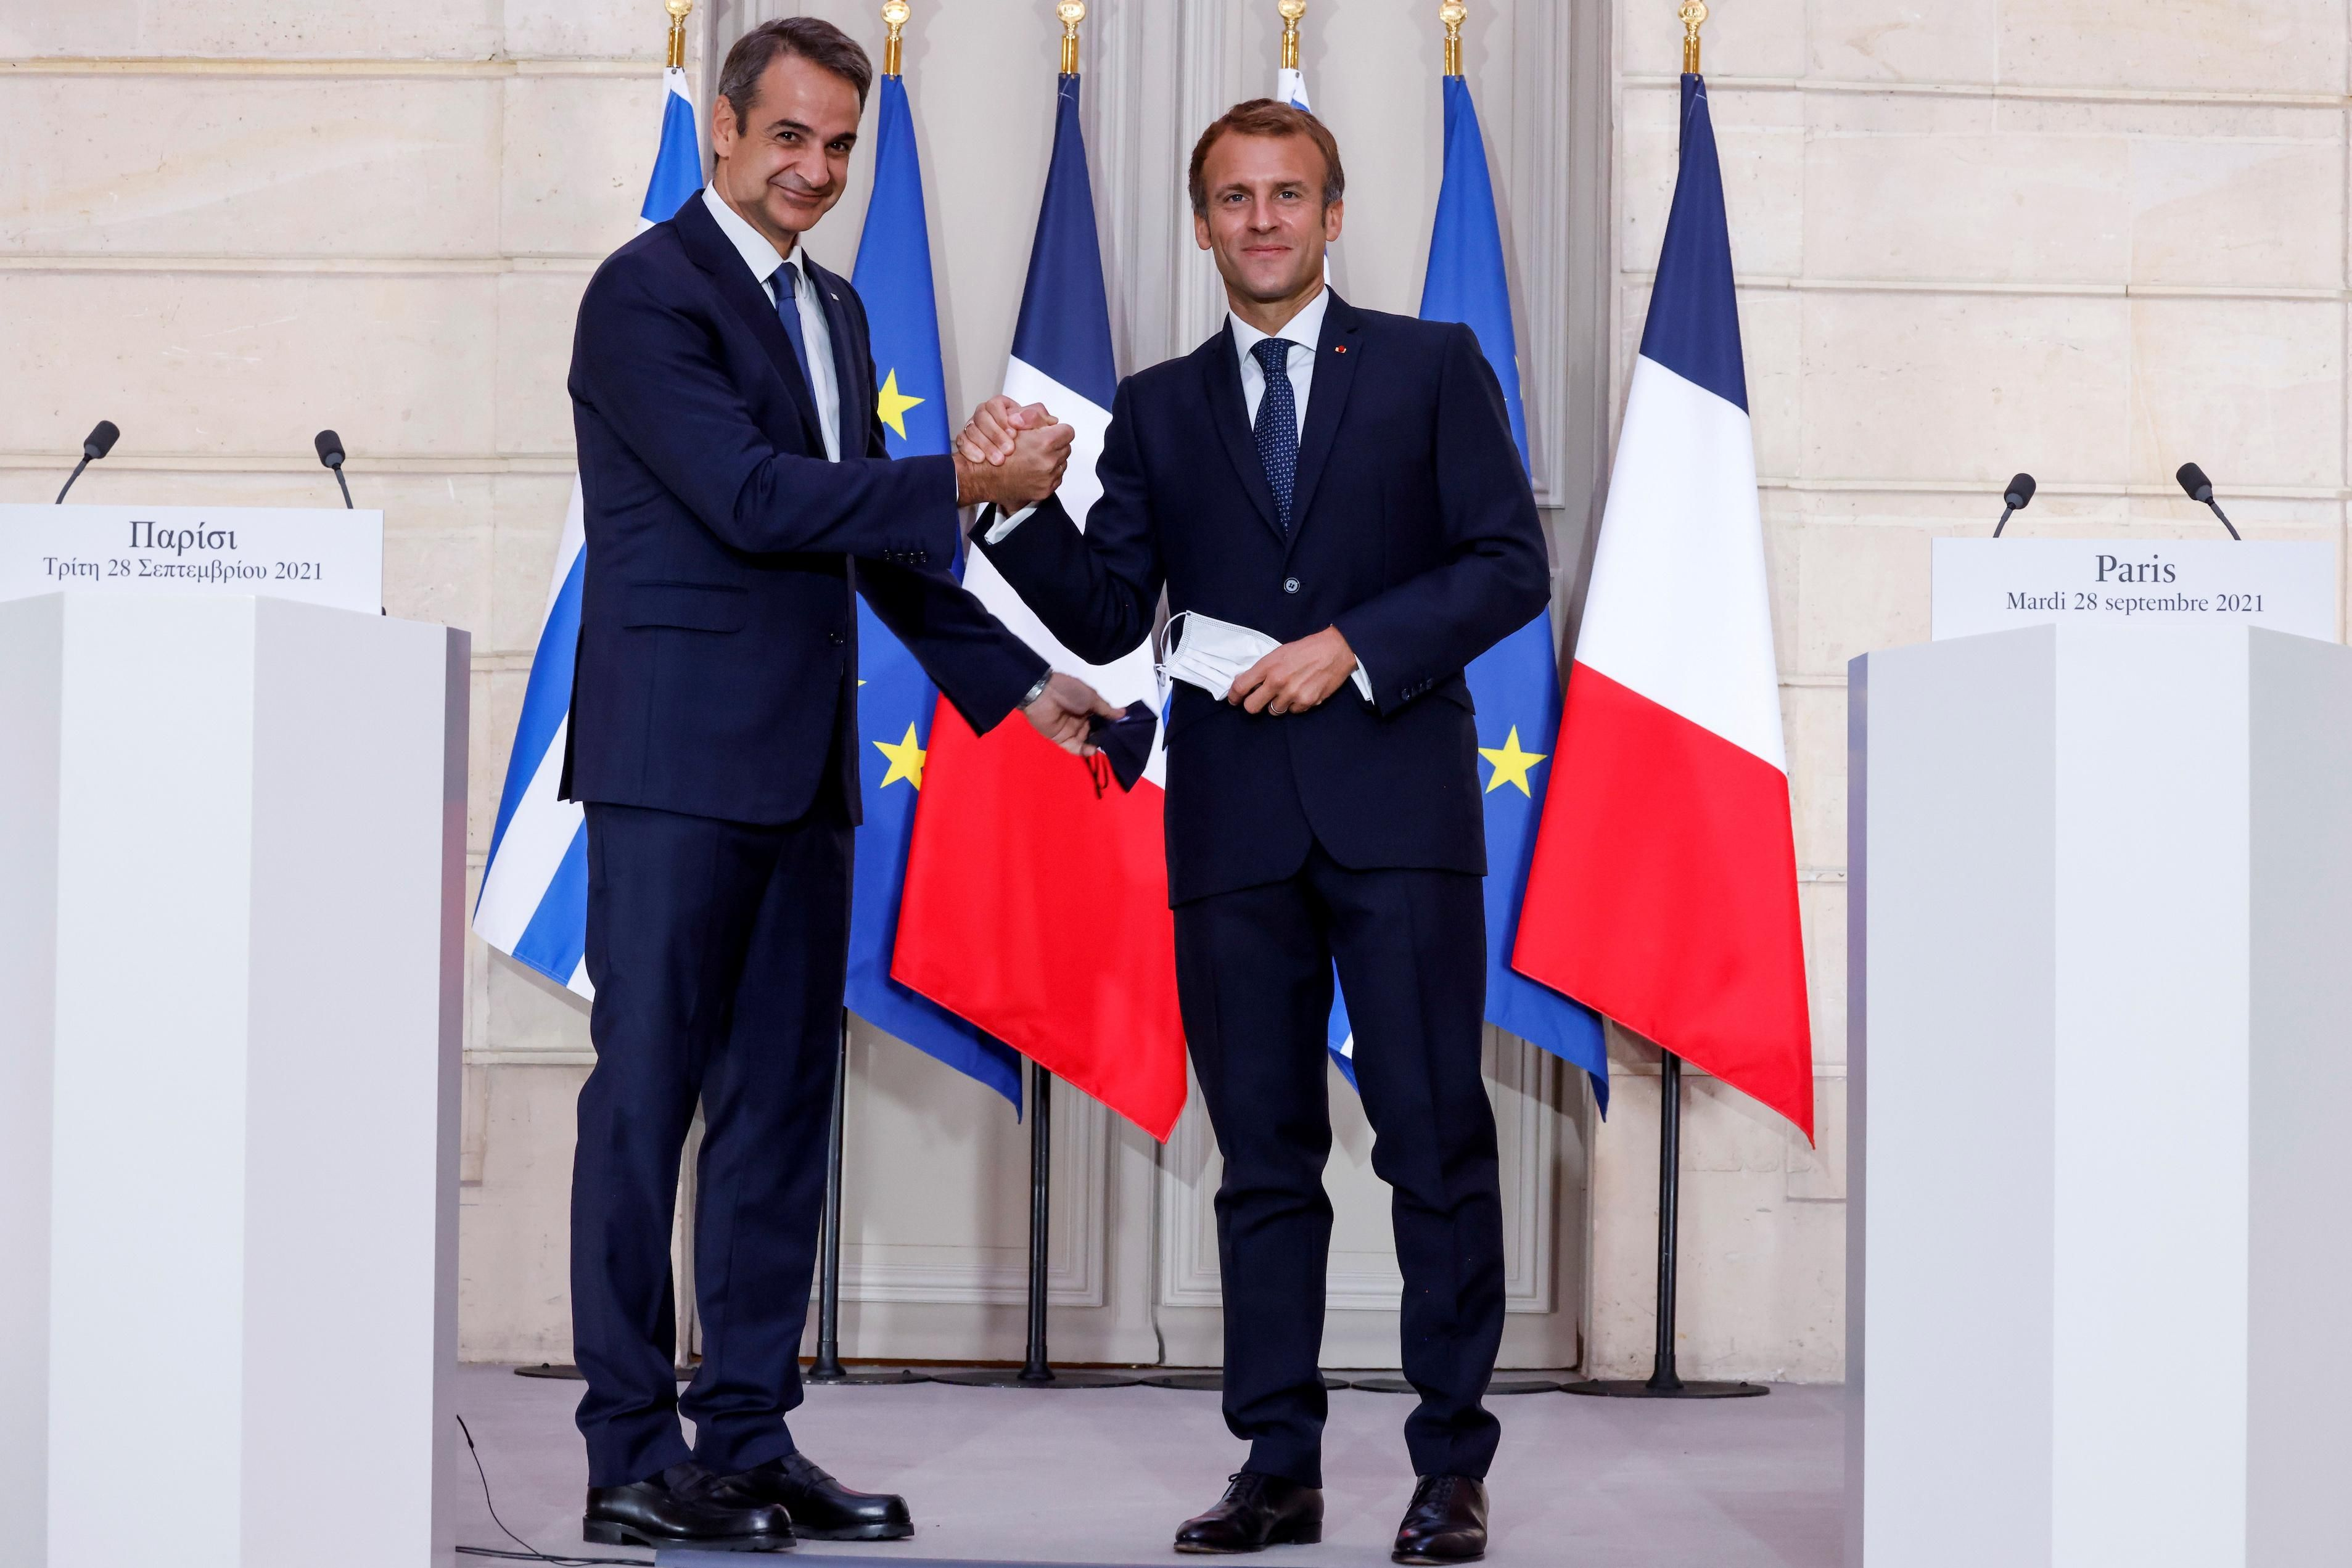 Greek Prime Minister Kyriakos Mitsotakis speaks as French President Emmanuel Macron listens on during a signing ceremony of a new defence deal at The Elysee Palace in Paris, France September 28, 2021.